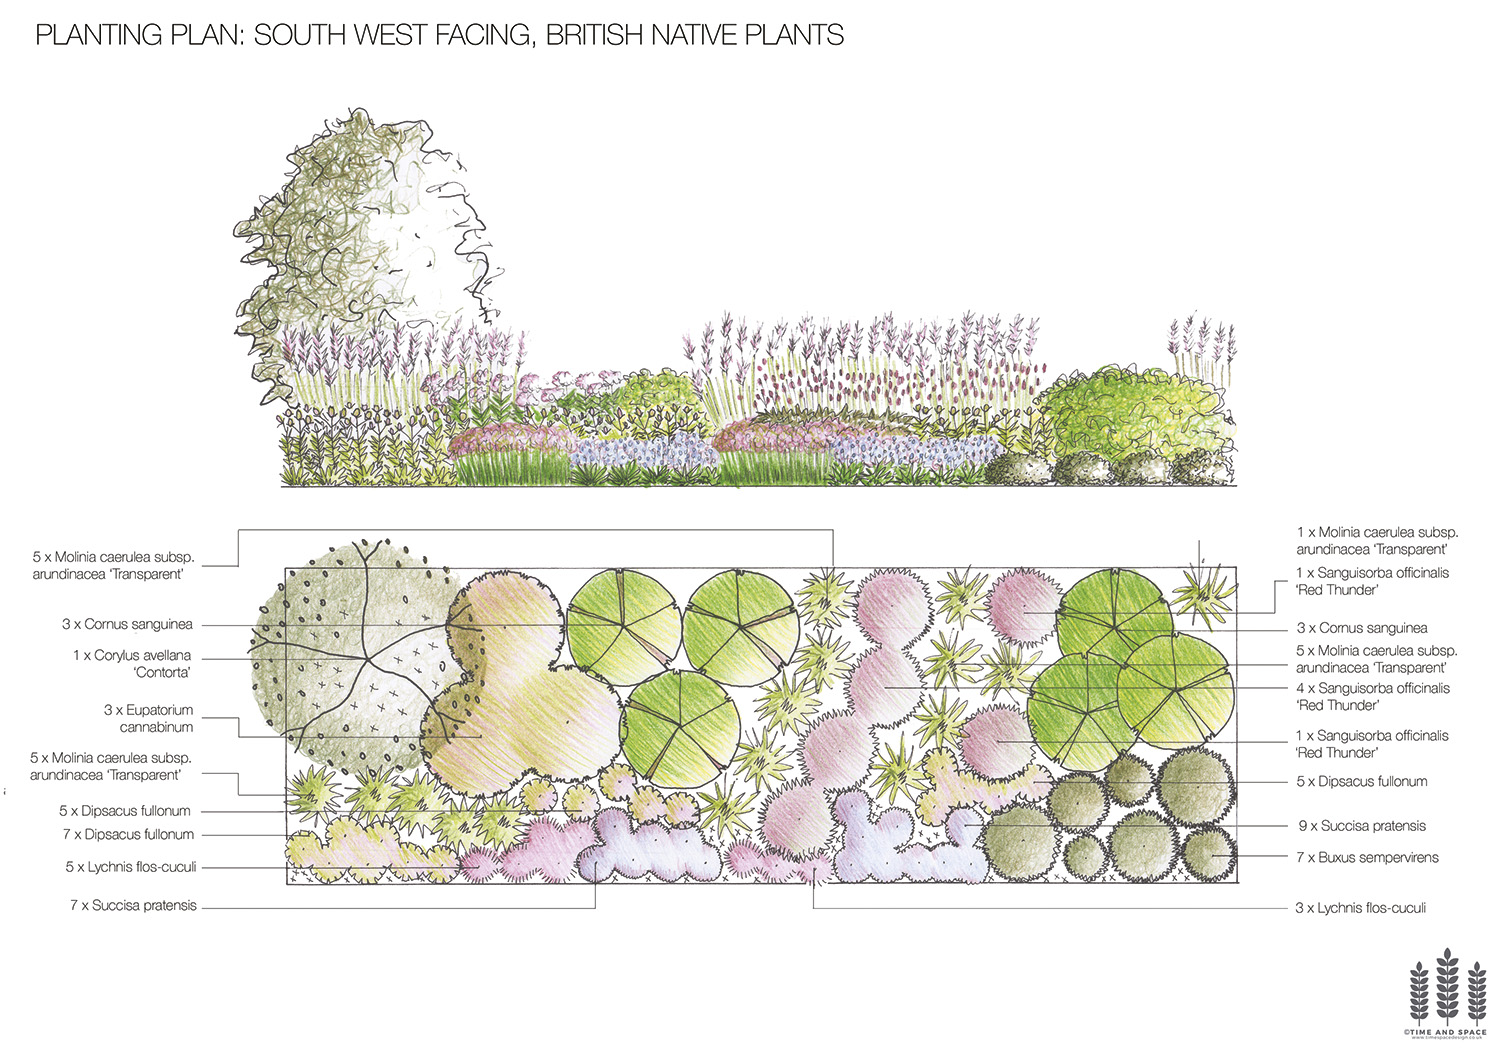 Planting plan - British native plants